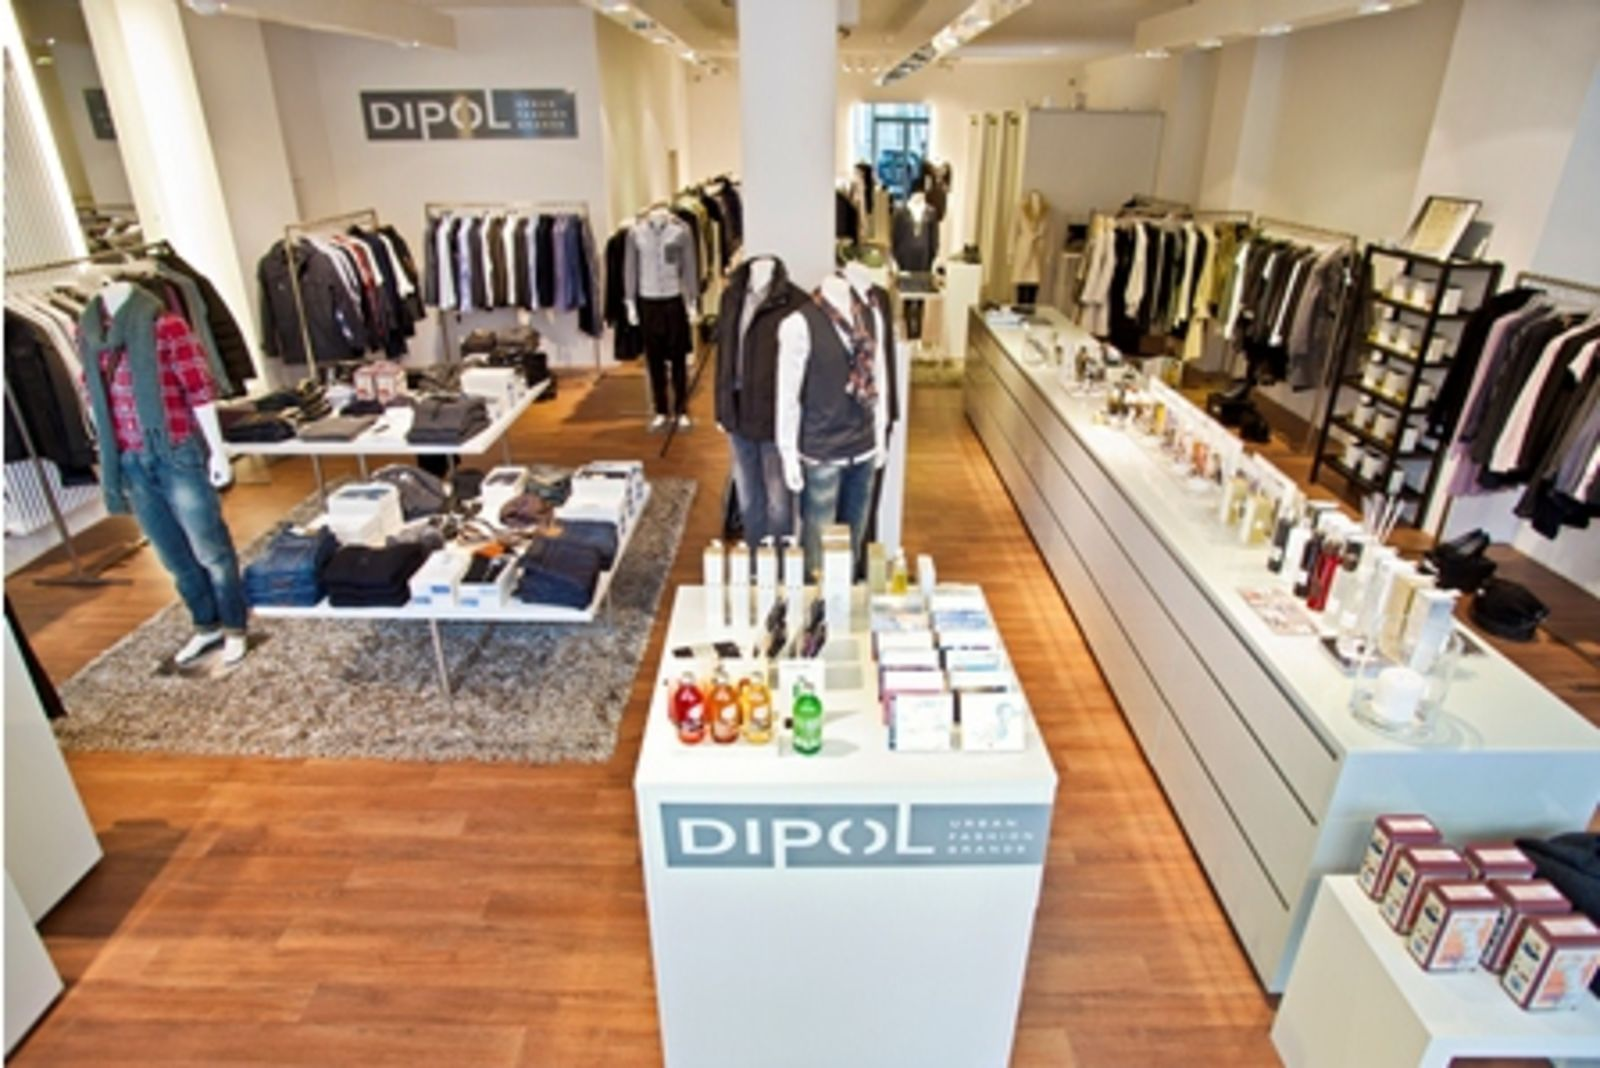 dipol - urban fashion brands in Mannheim (Bild 3)